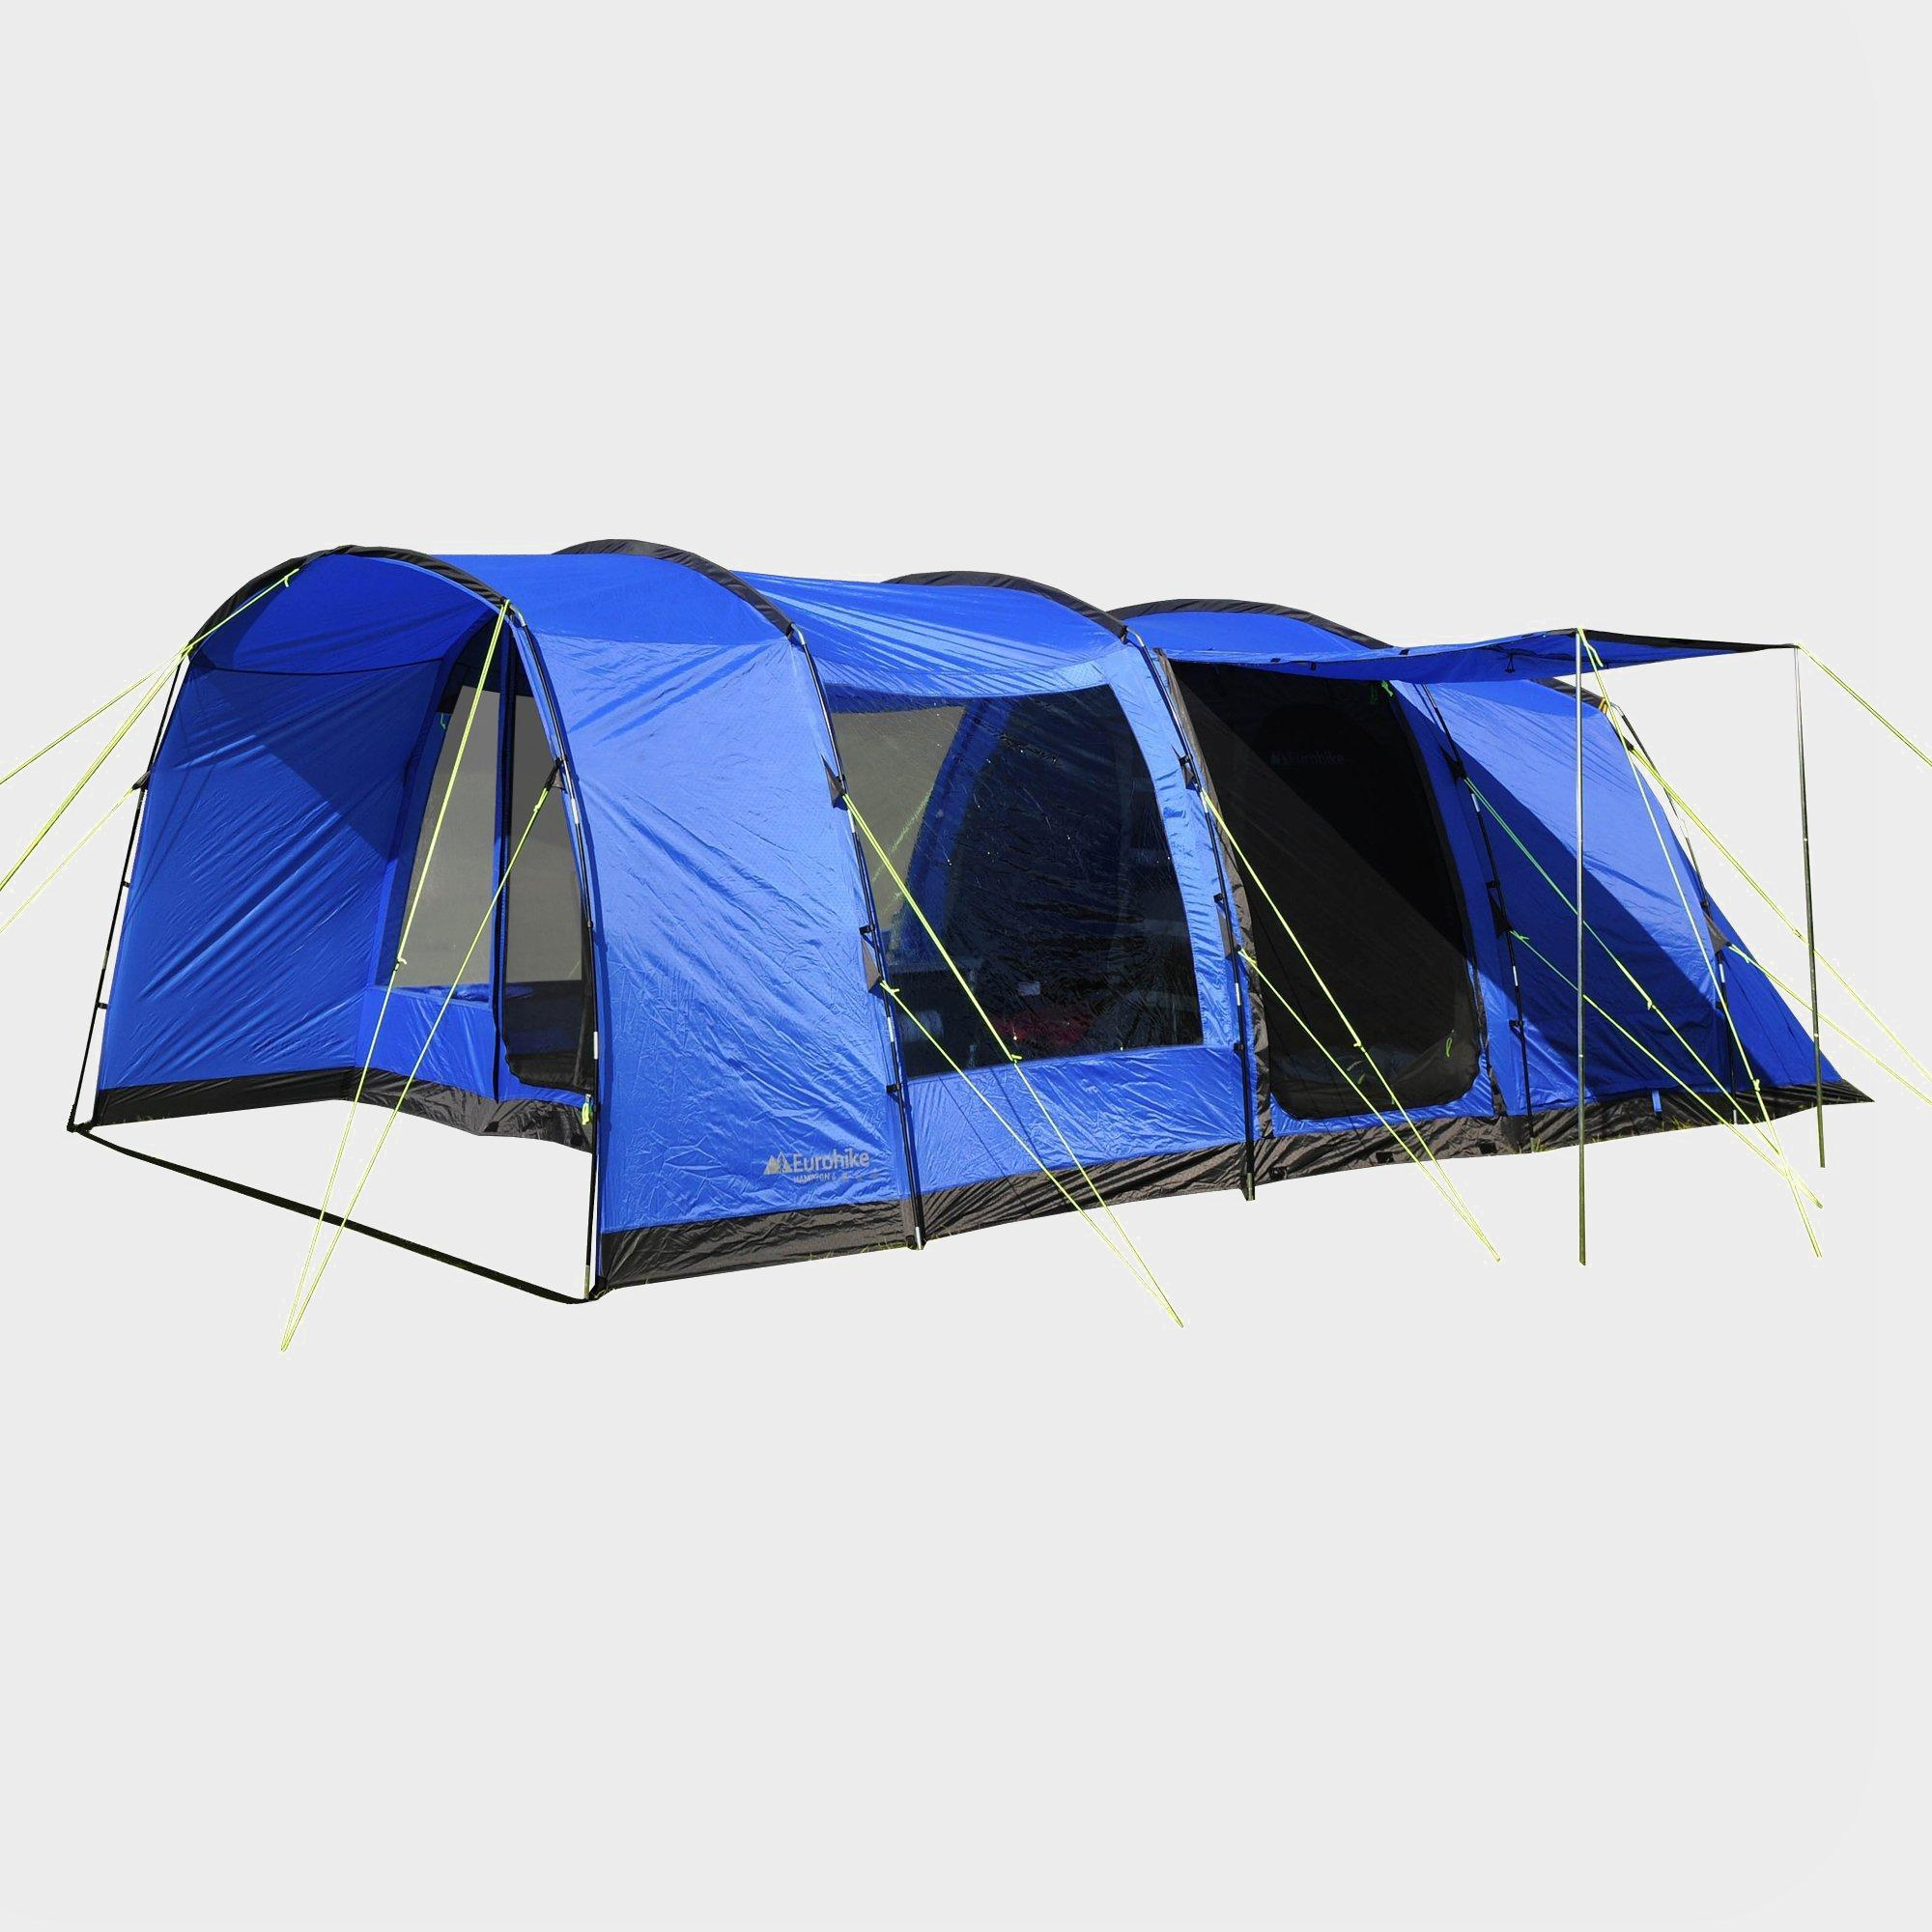 H&ton 6 Person Tent  sc 1 st  Millets : six berth tents - memphite.com